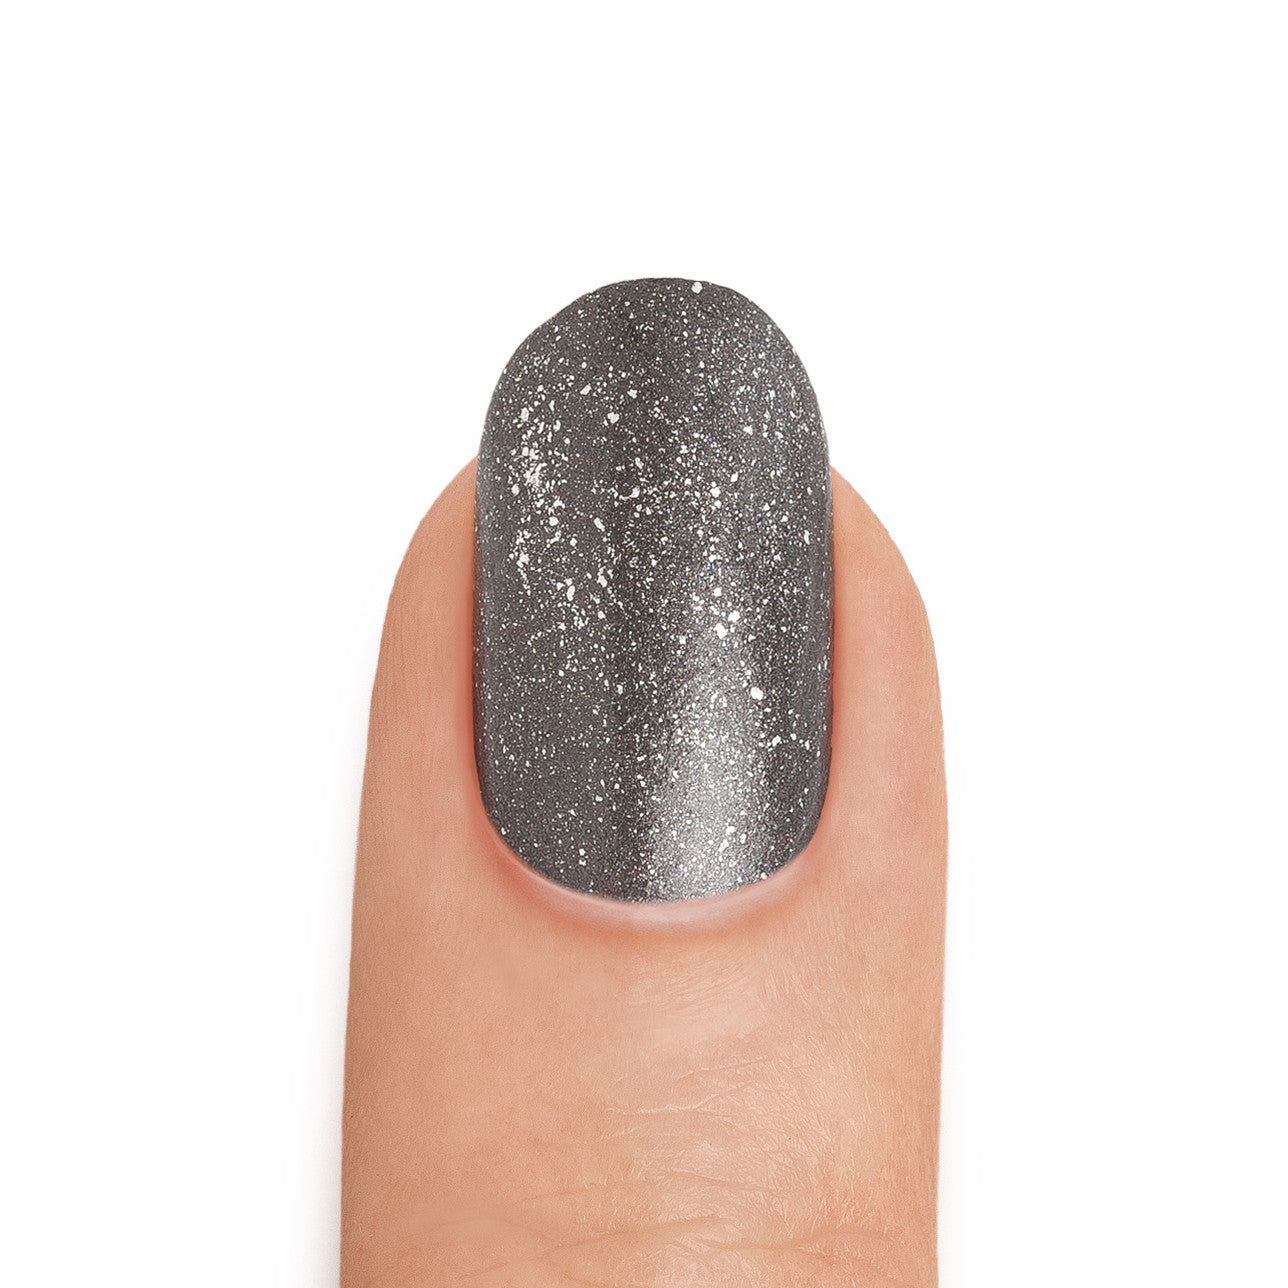 Real Silver Nail Polish over Graphite- MINE Luxury Nail Lacquer